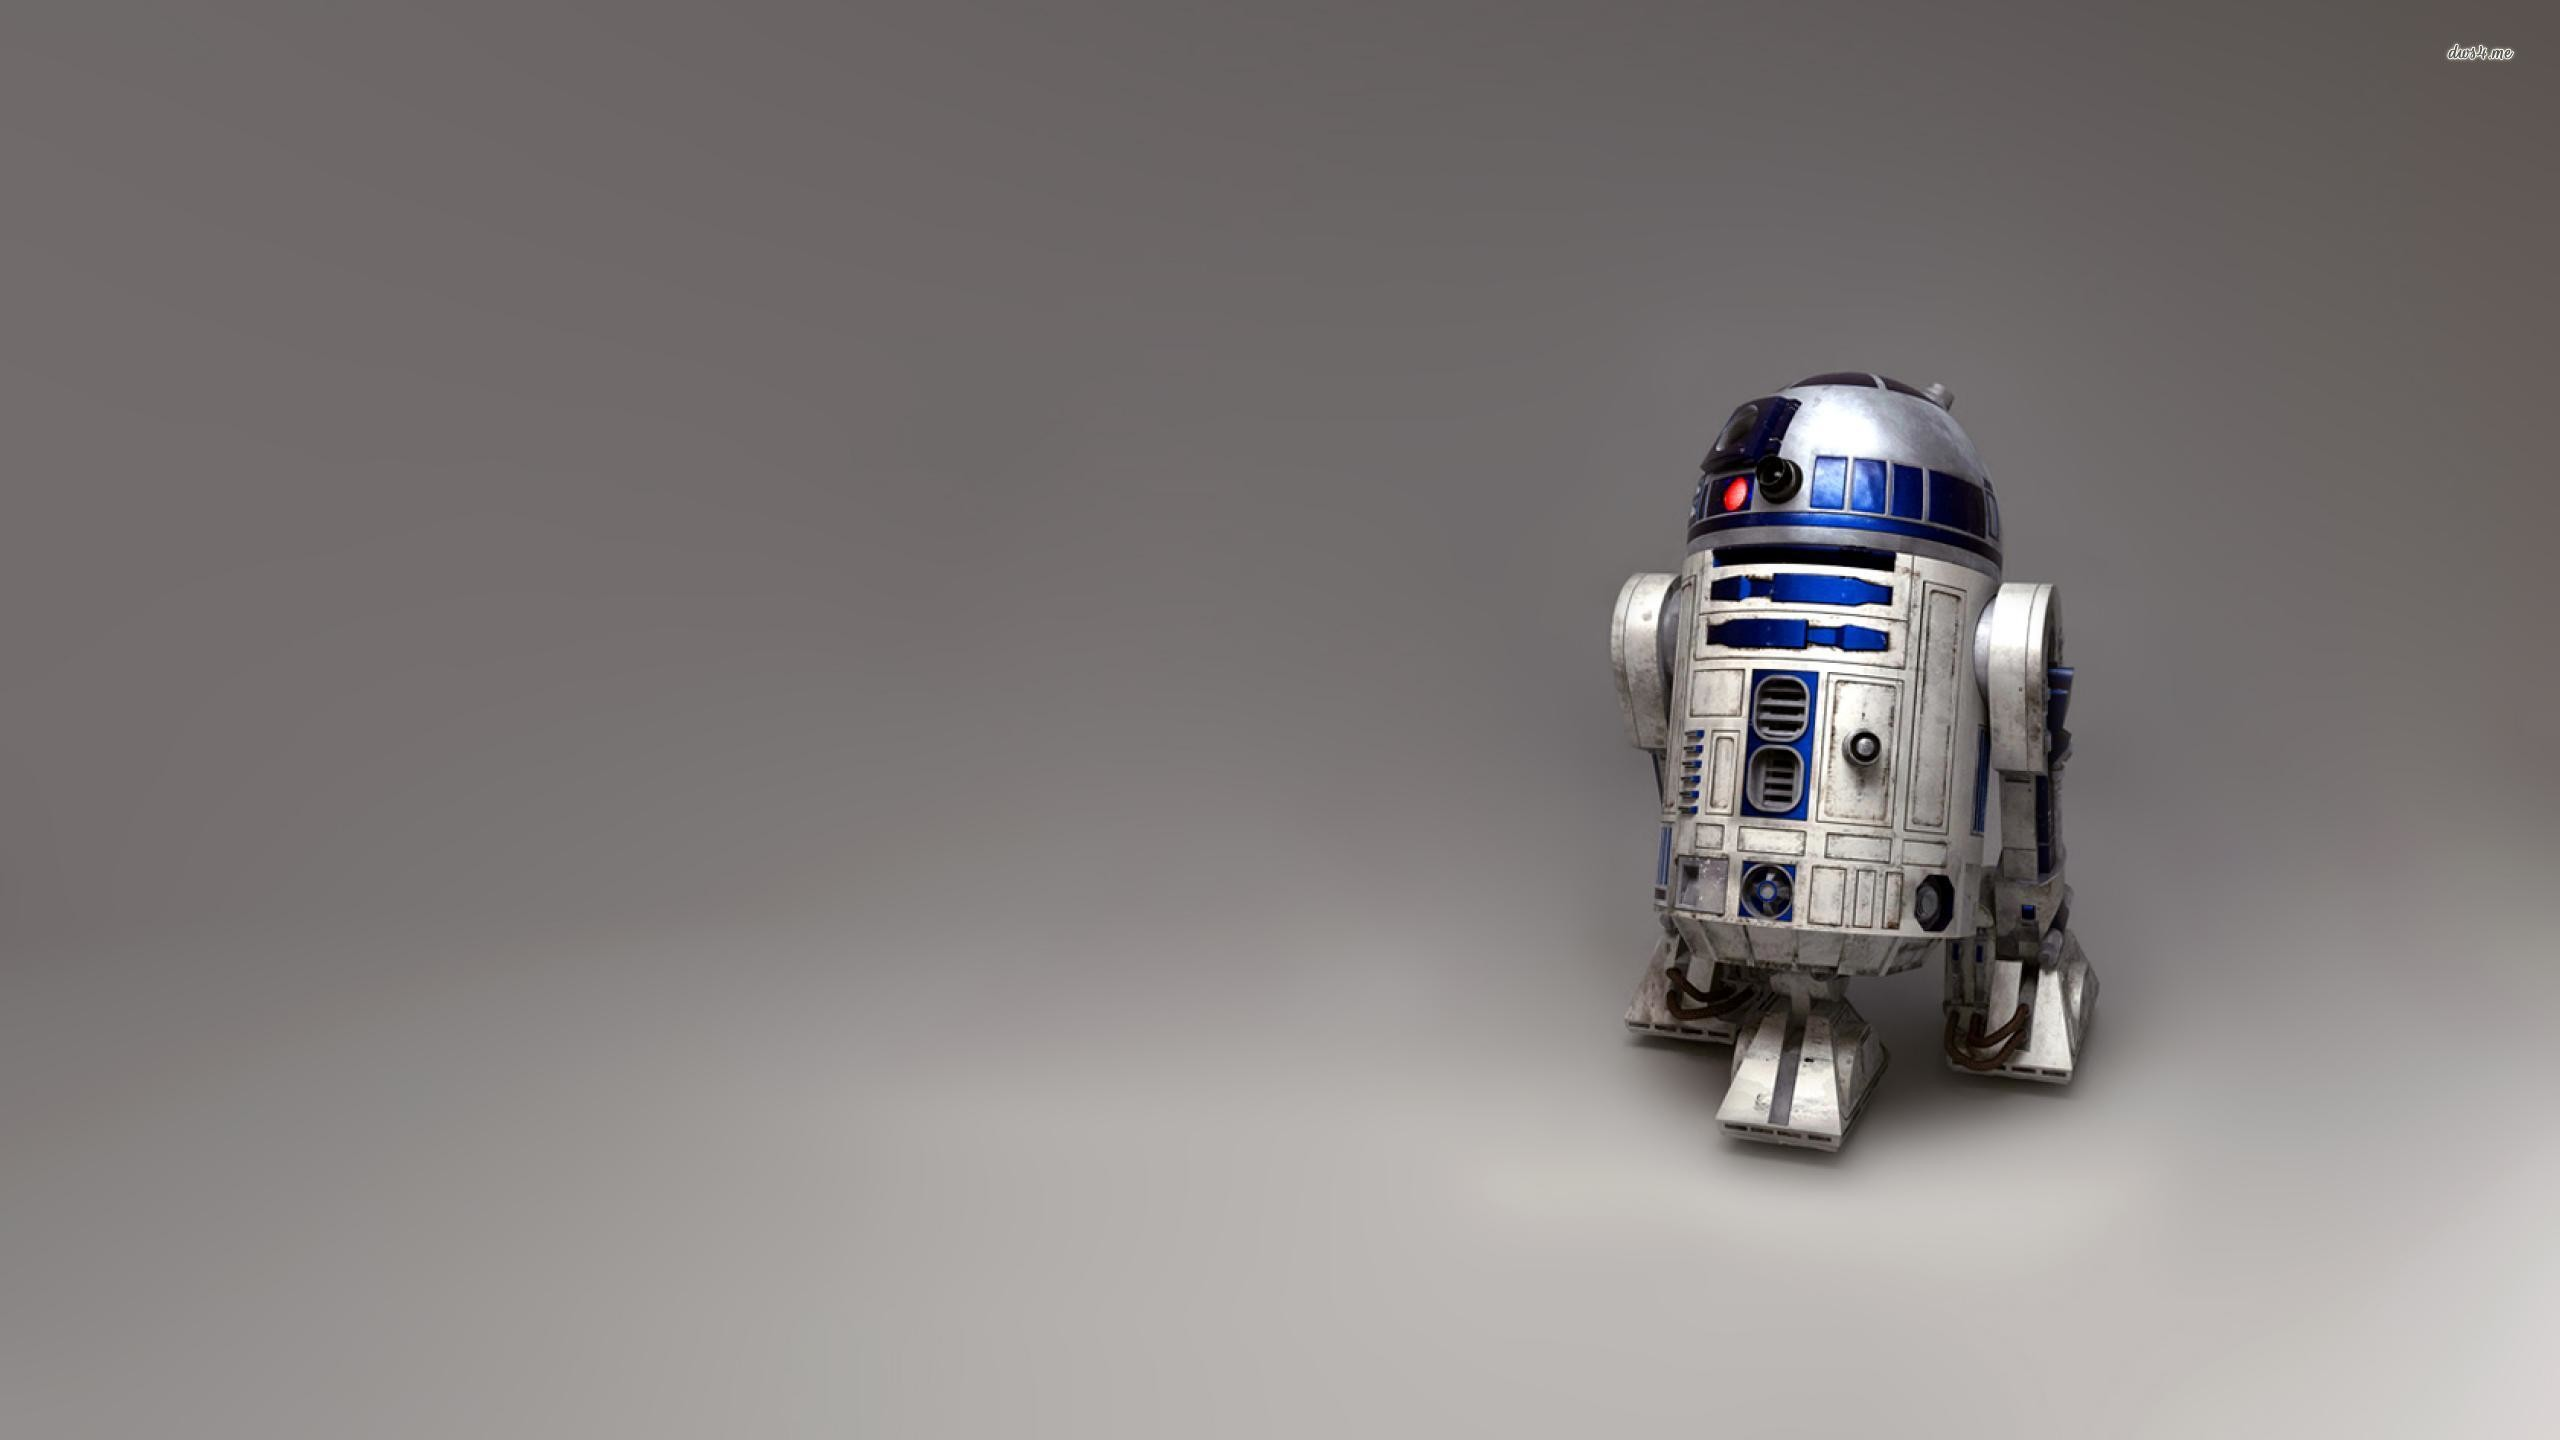 2560x1440 ... Star Wars with R2D2 wallpaper  ...